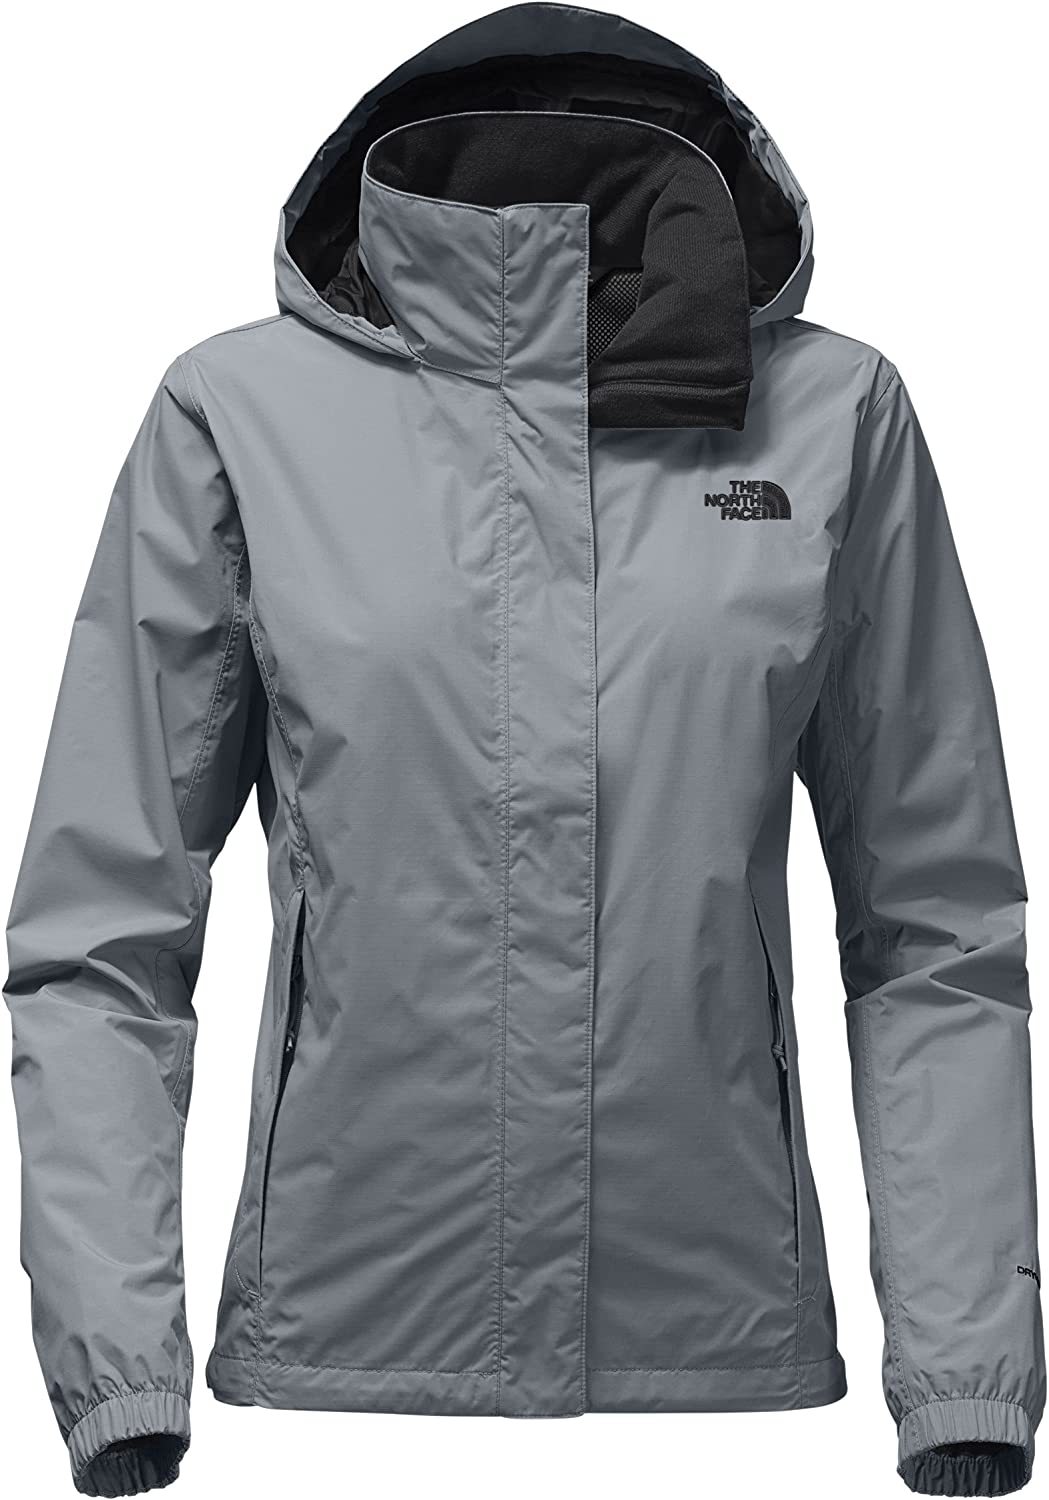 The North Face Women's Resolve 2 DWR Rain Jacket